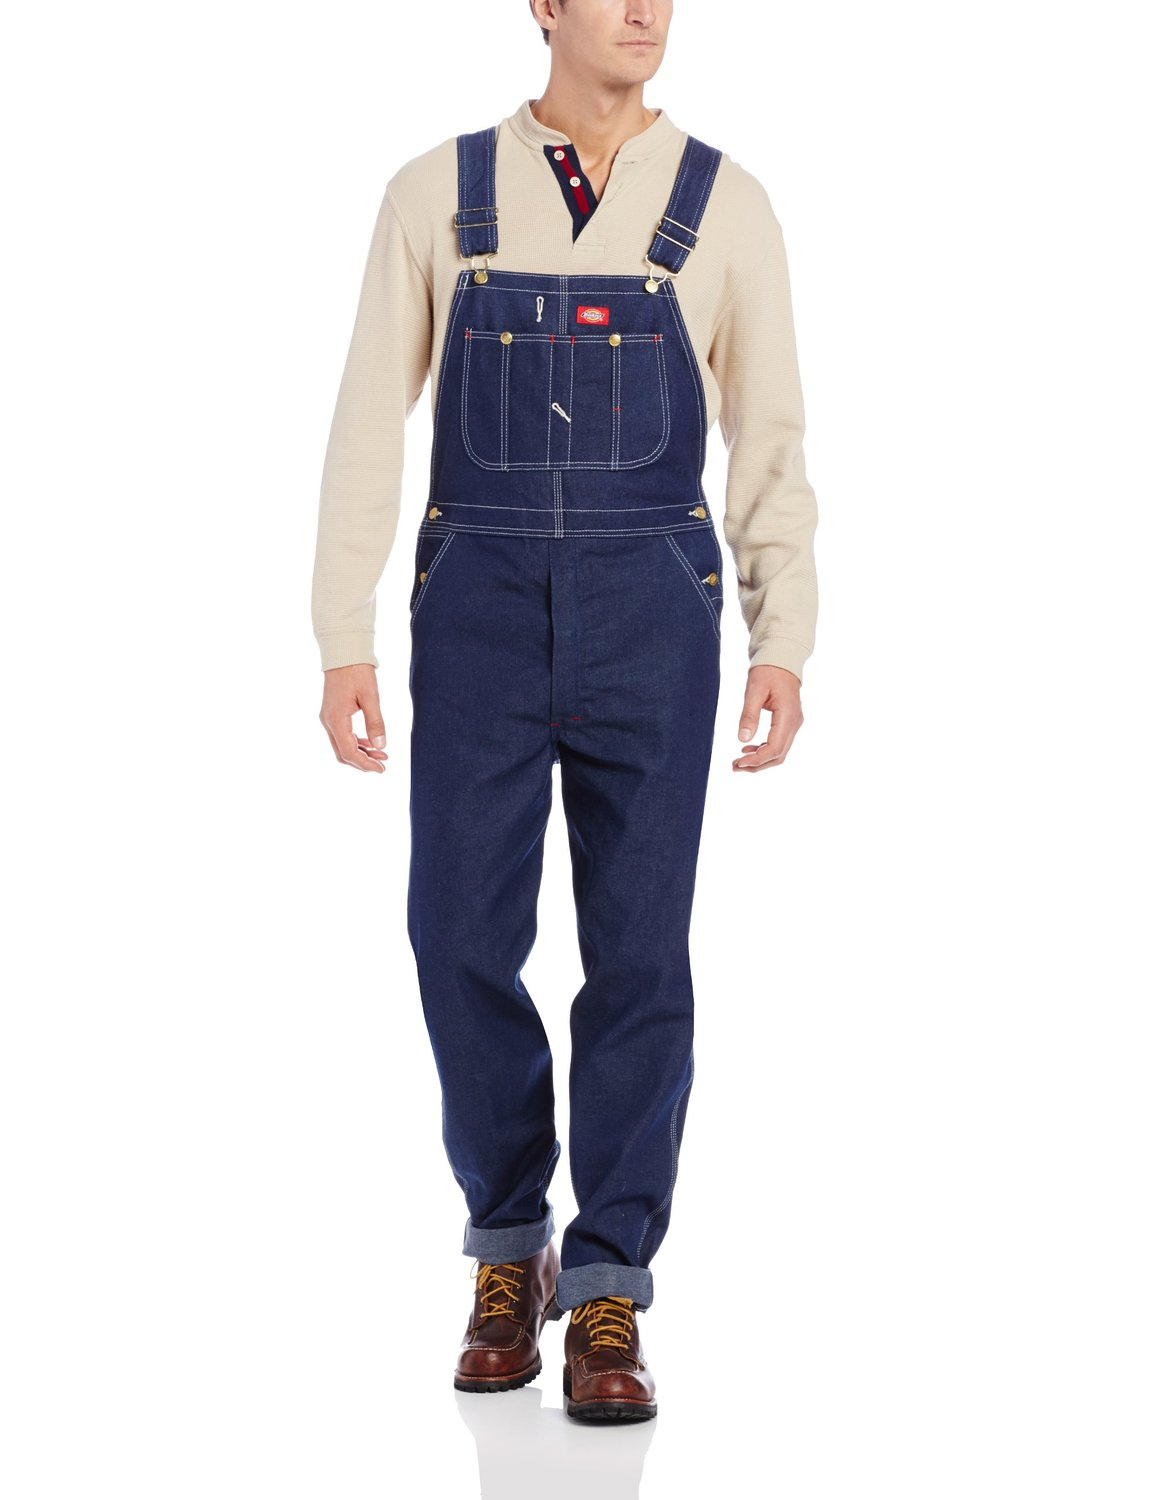 A man wears his overalls.